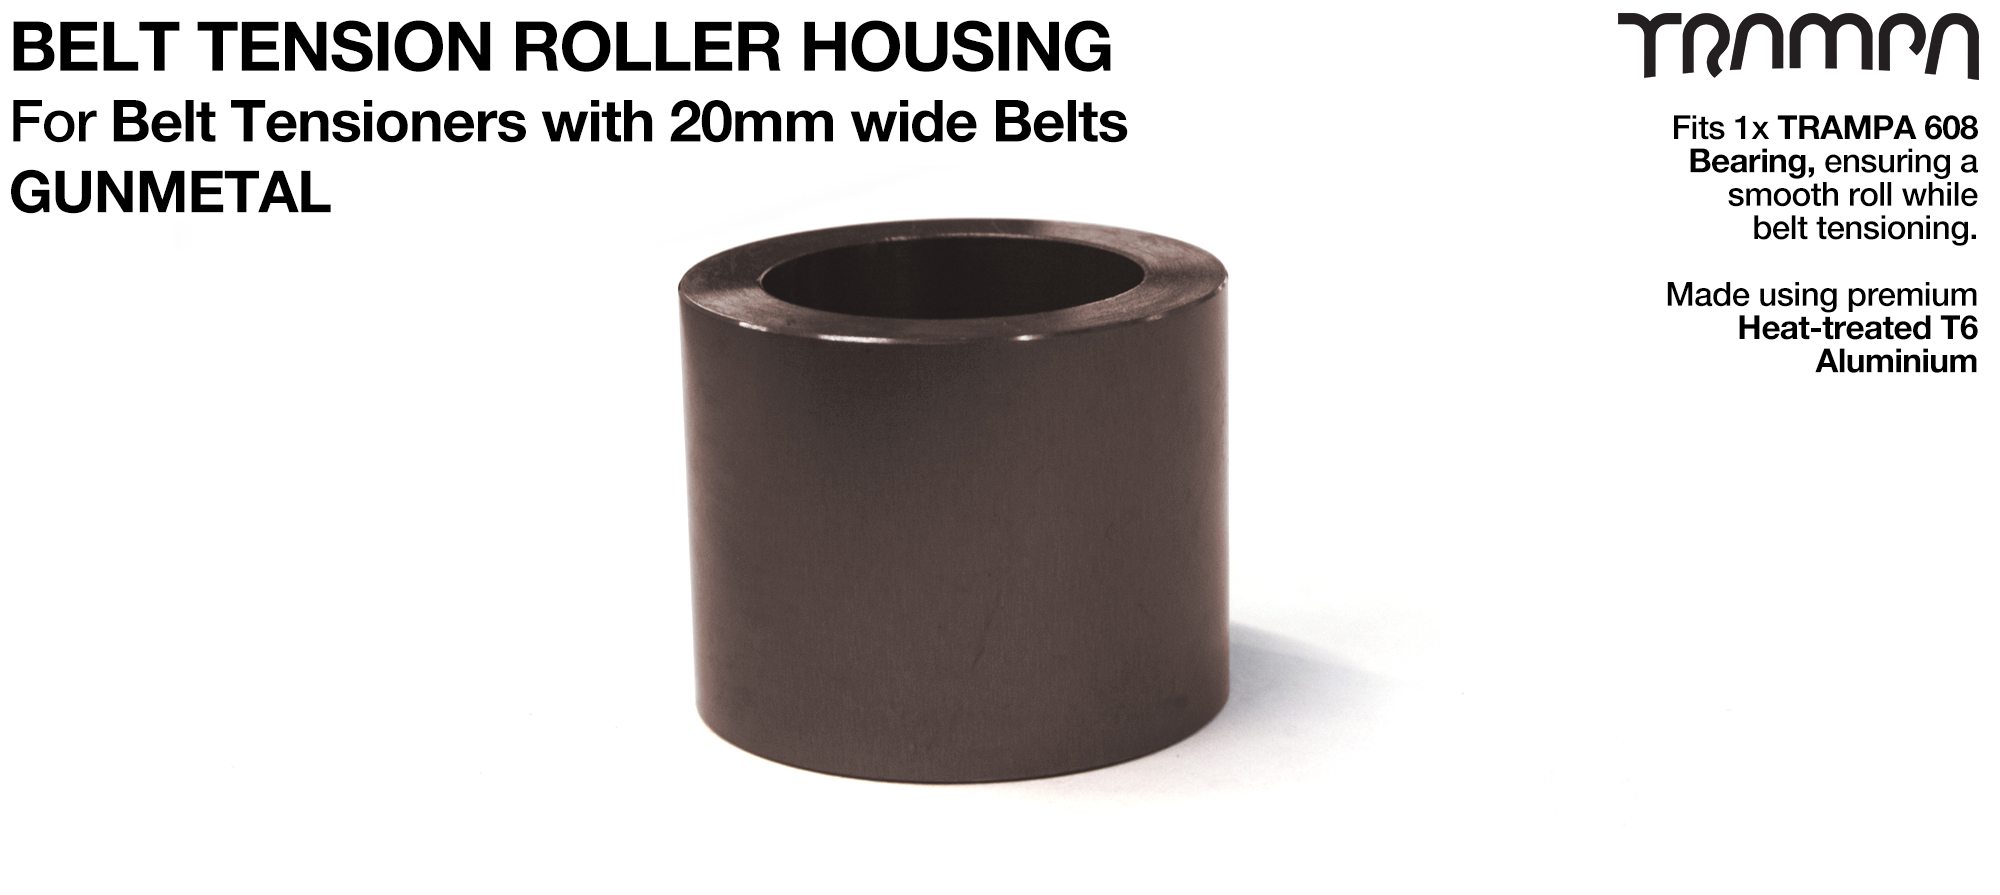 Belt Tension Roller Housing for 20mm Belts - GUNMETAL